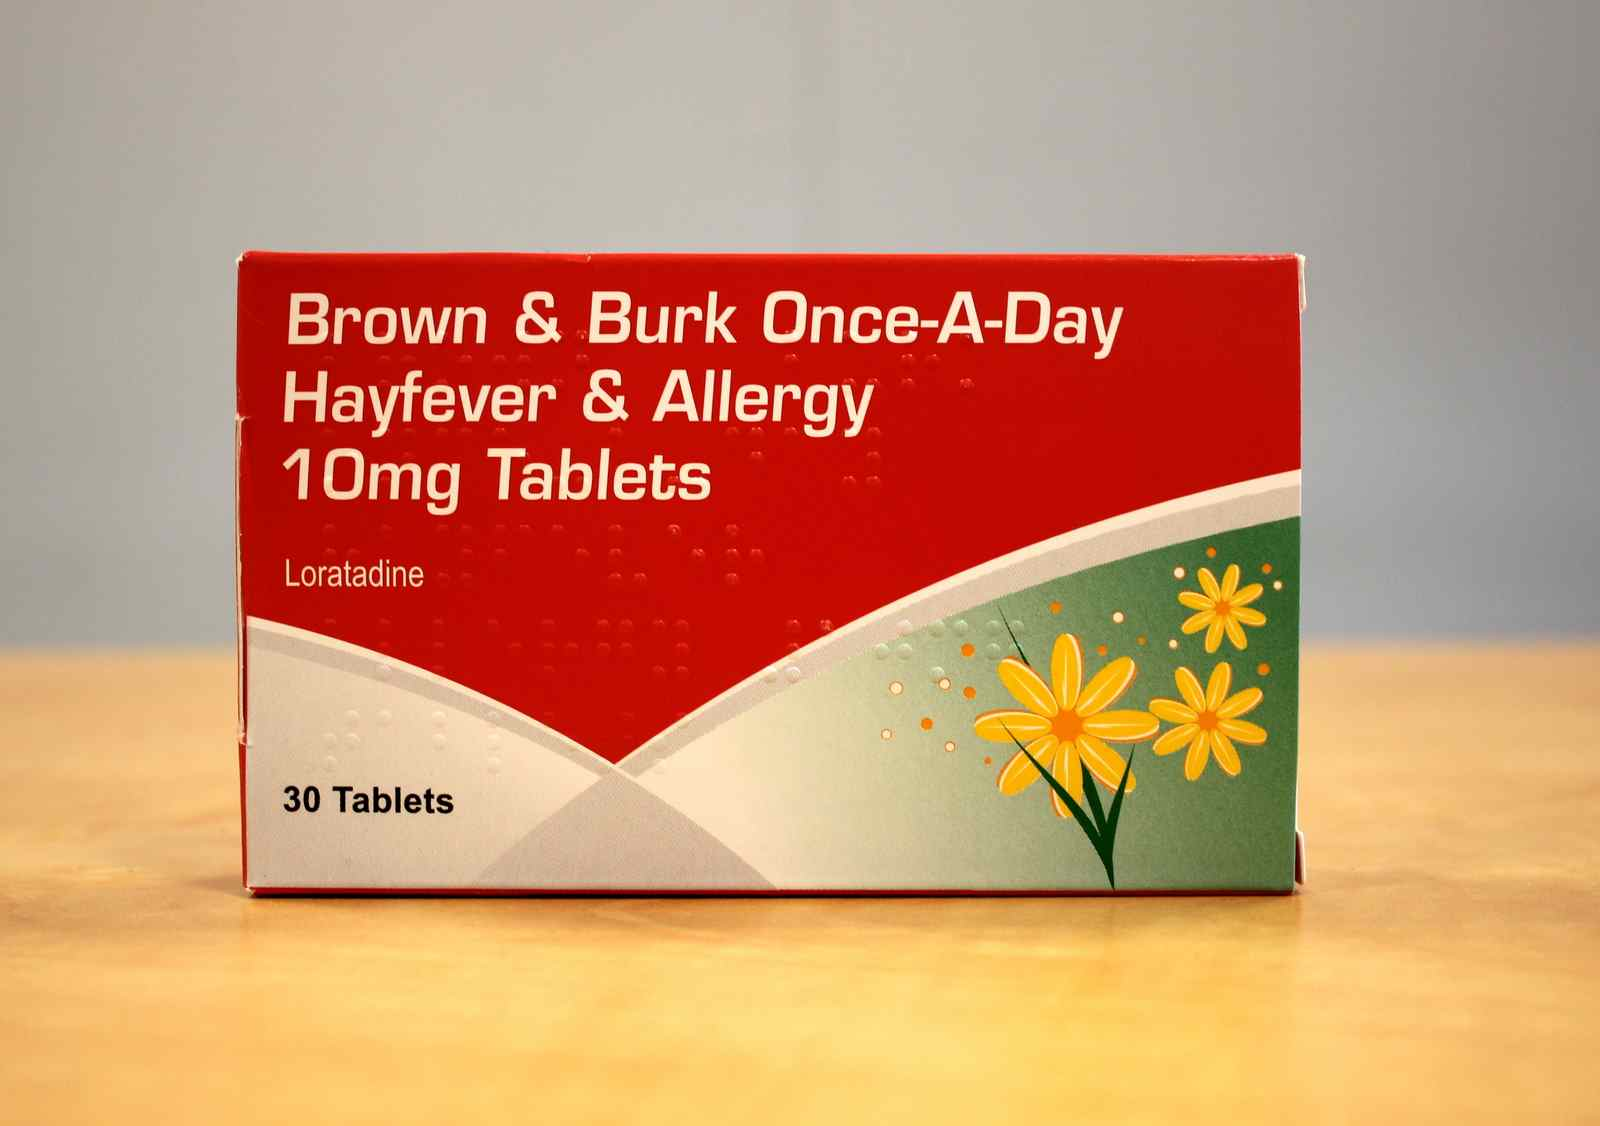 Once -A-Day Hayfever & Allergy 10 mg 30 Tablets